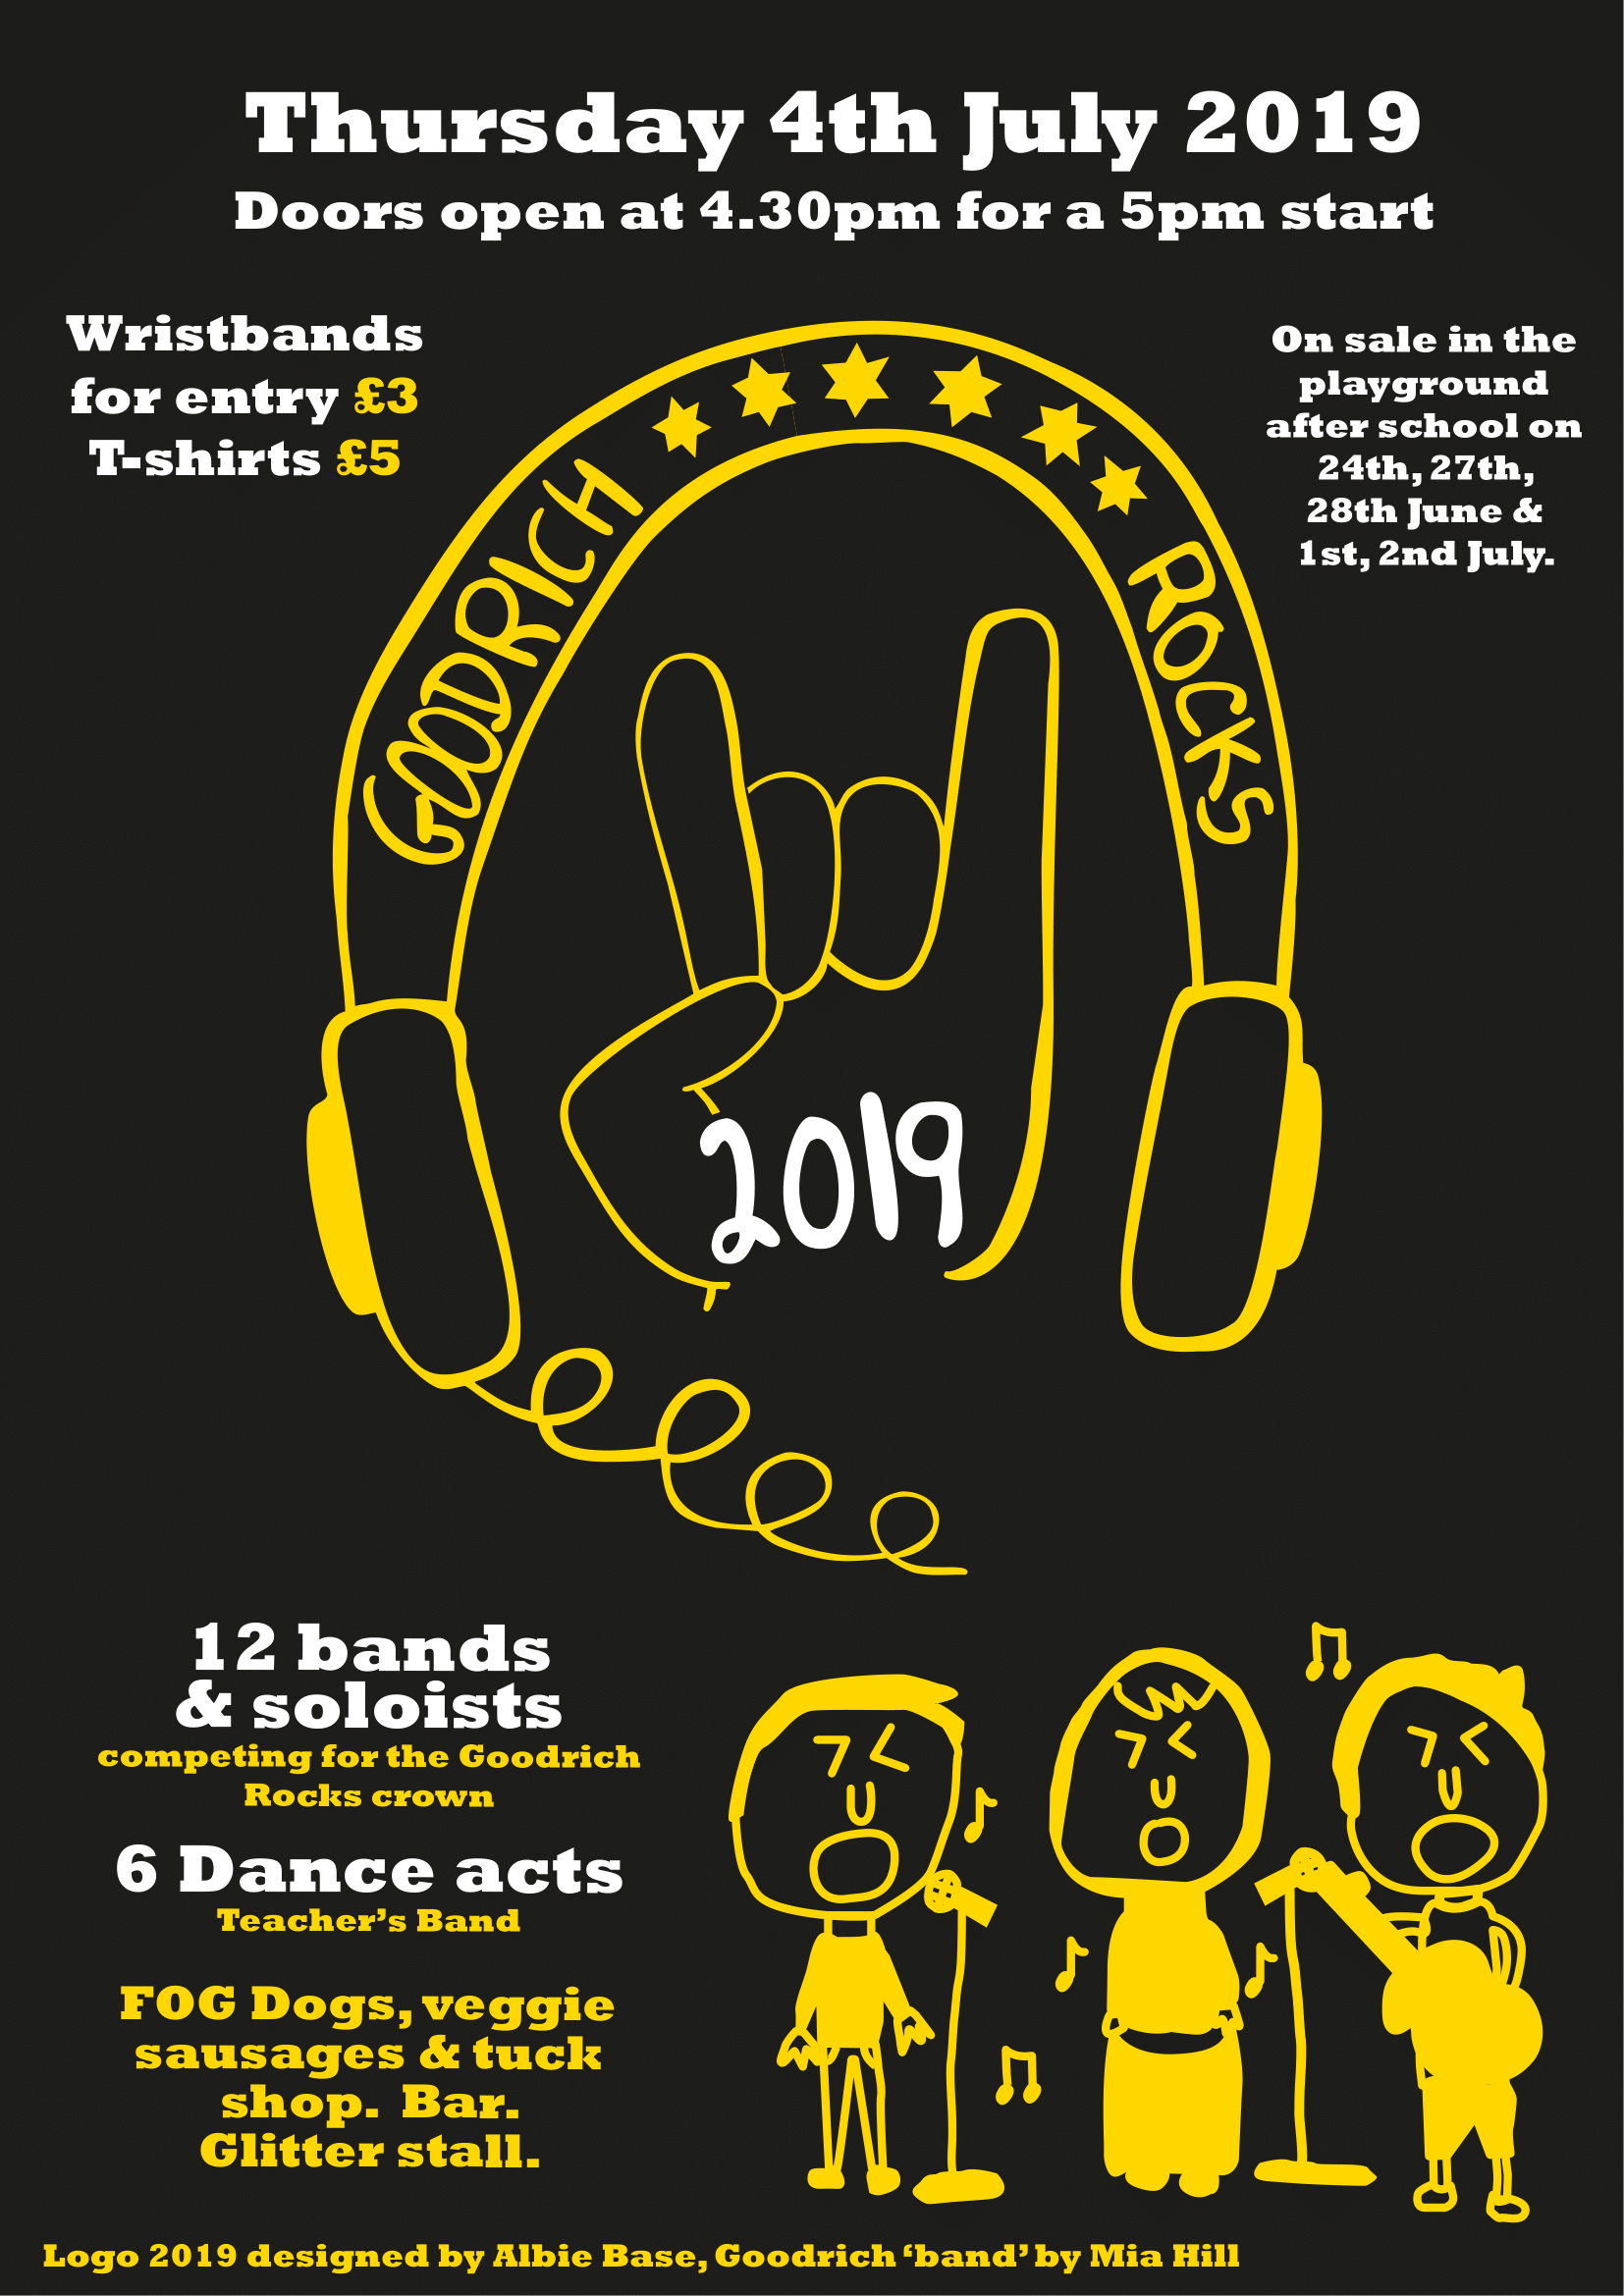 - Goodrich Rocks, 4th July 2019Glastonbury, you say? Nah, Goodrich Rocks is where it's at! It may be just as tricky to get your paws on a ticket though, so don't sleep. Goodrich Rocks entry wristbands go on sale outside the lower hall and in the playground from this Thursday, priced at £3 and t-shirts are £5.Goodrich Rocks is on Thursday 4th July and doors open at 4.30pm for a 5pm start, with the action wrapping up at around 7pm. This year we have an awesome line up of 12 bands/soloists and 6 dance troupes. They'll all be performing to get their hands on the coveted GR trophy - but more importantly to have an amazing time, so please come along to cheer them as loudly as you can! Plus there's a bar, hot dogs and veggie dogs, tuck shop and glitter station.Huge congratulations to Albie Base who designed our awesome Goodrich Rocks 2019 logo which will adorn the event t-shirts! Plus well done to runner up Mia Hill whose band design also features on the poster.And of course, enormous thanks to our sponsors Plus Rooms and Daisy Lets and Sales, without whom none of this could happen!